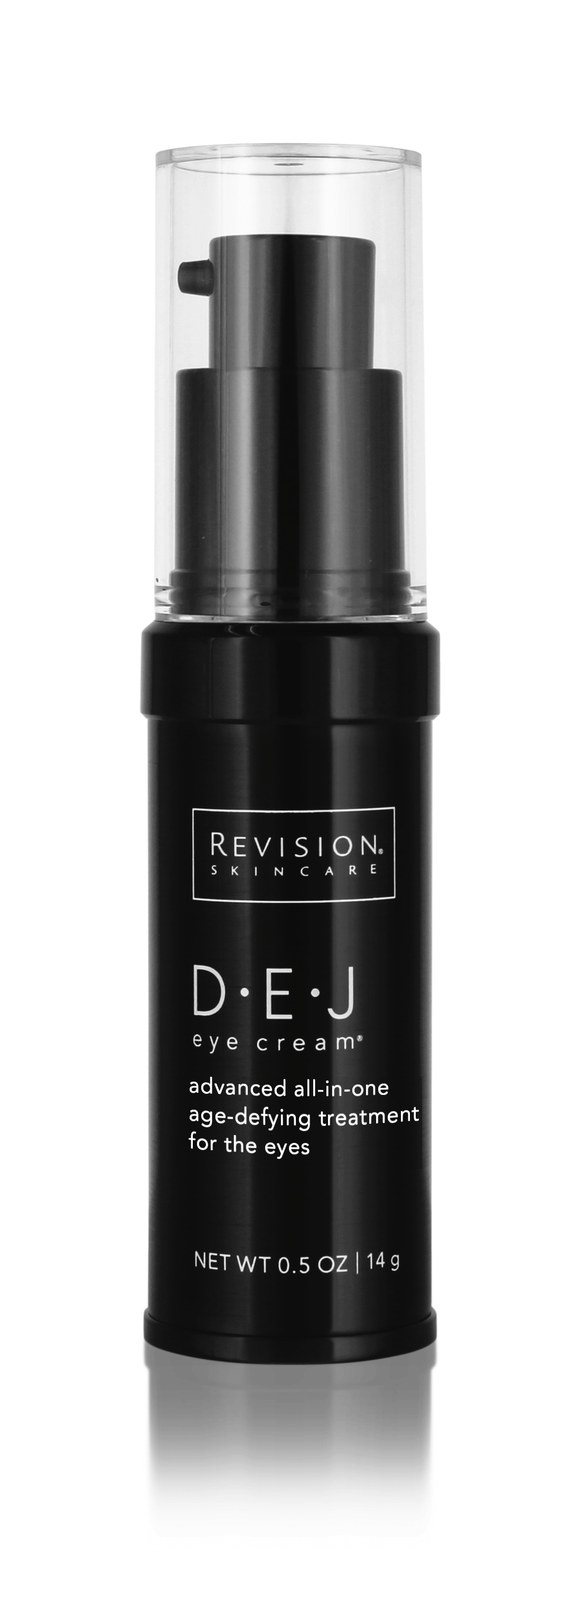 REVISION D.E.J. EYE CREAM